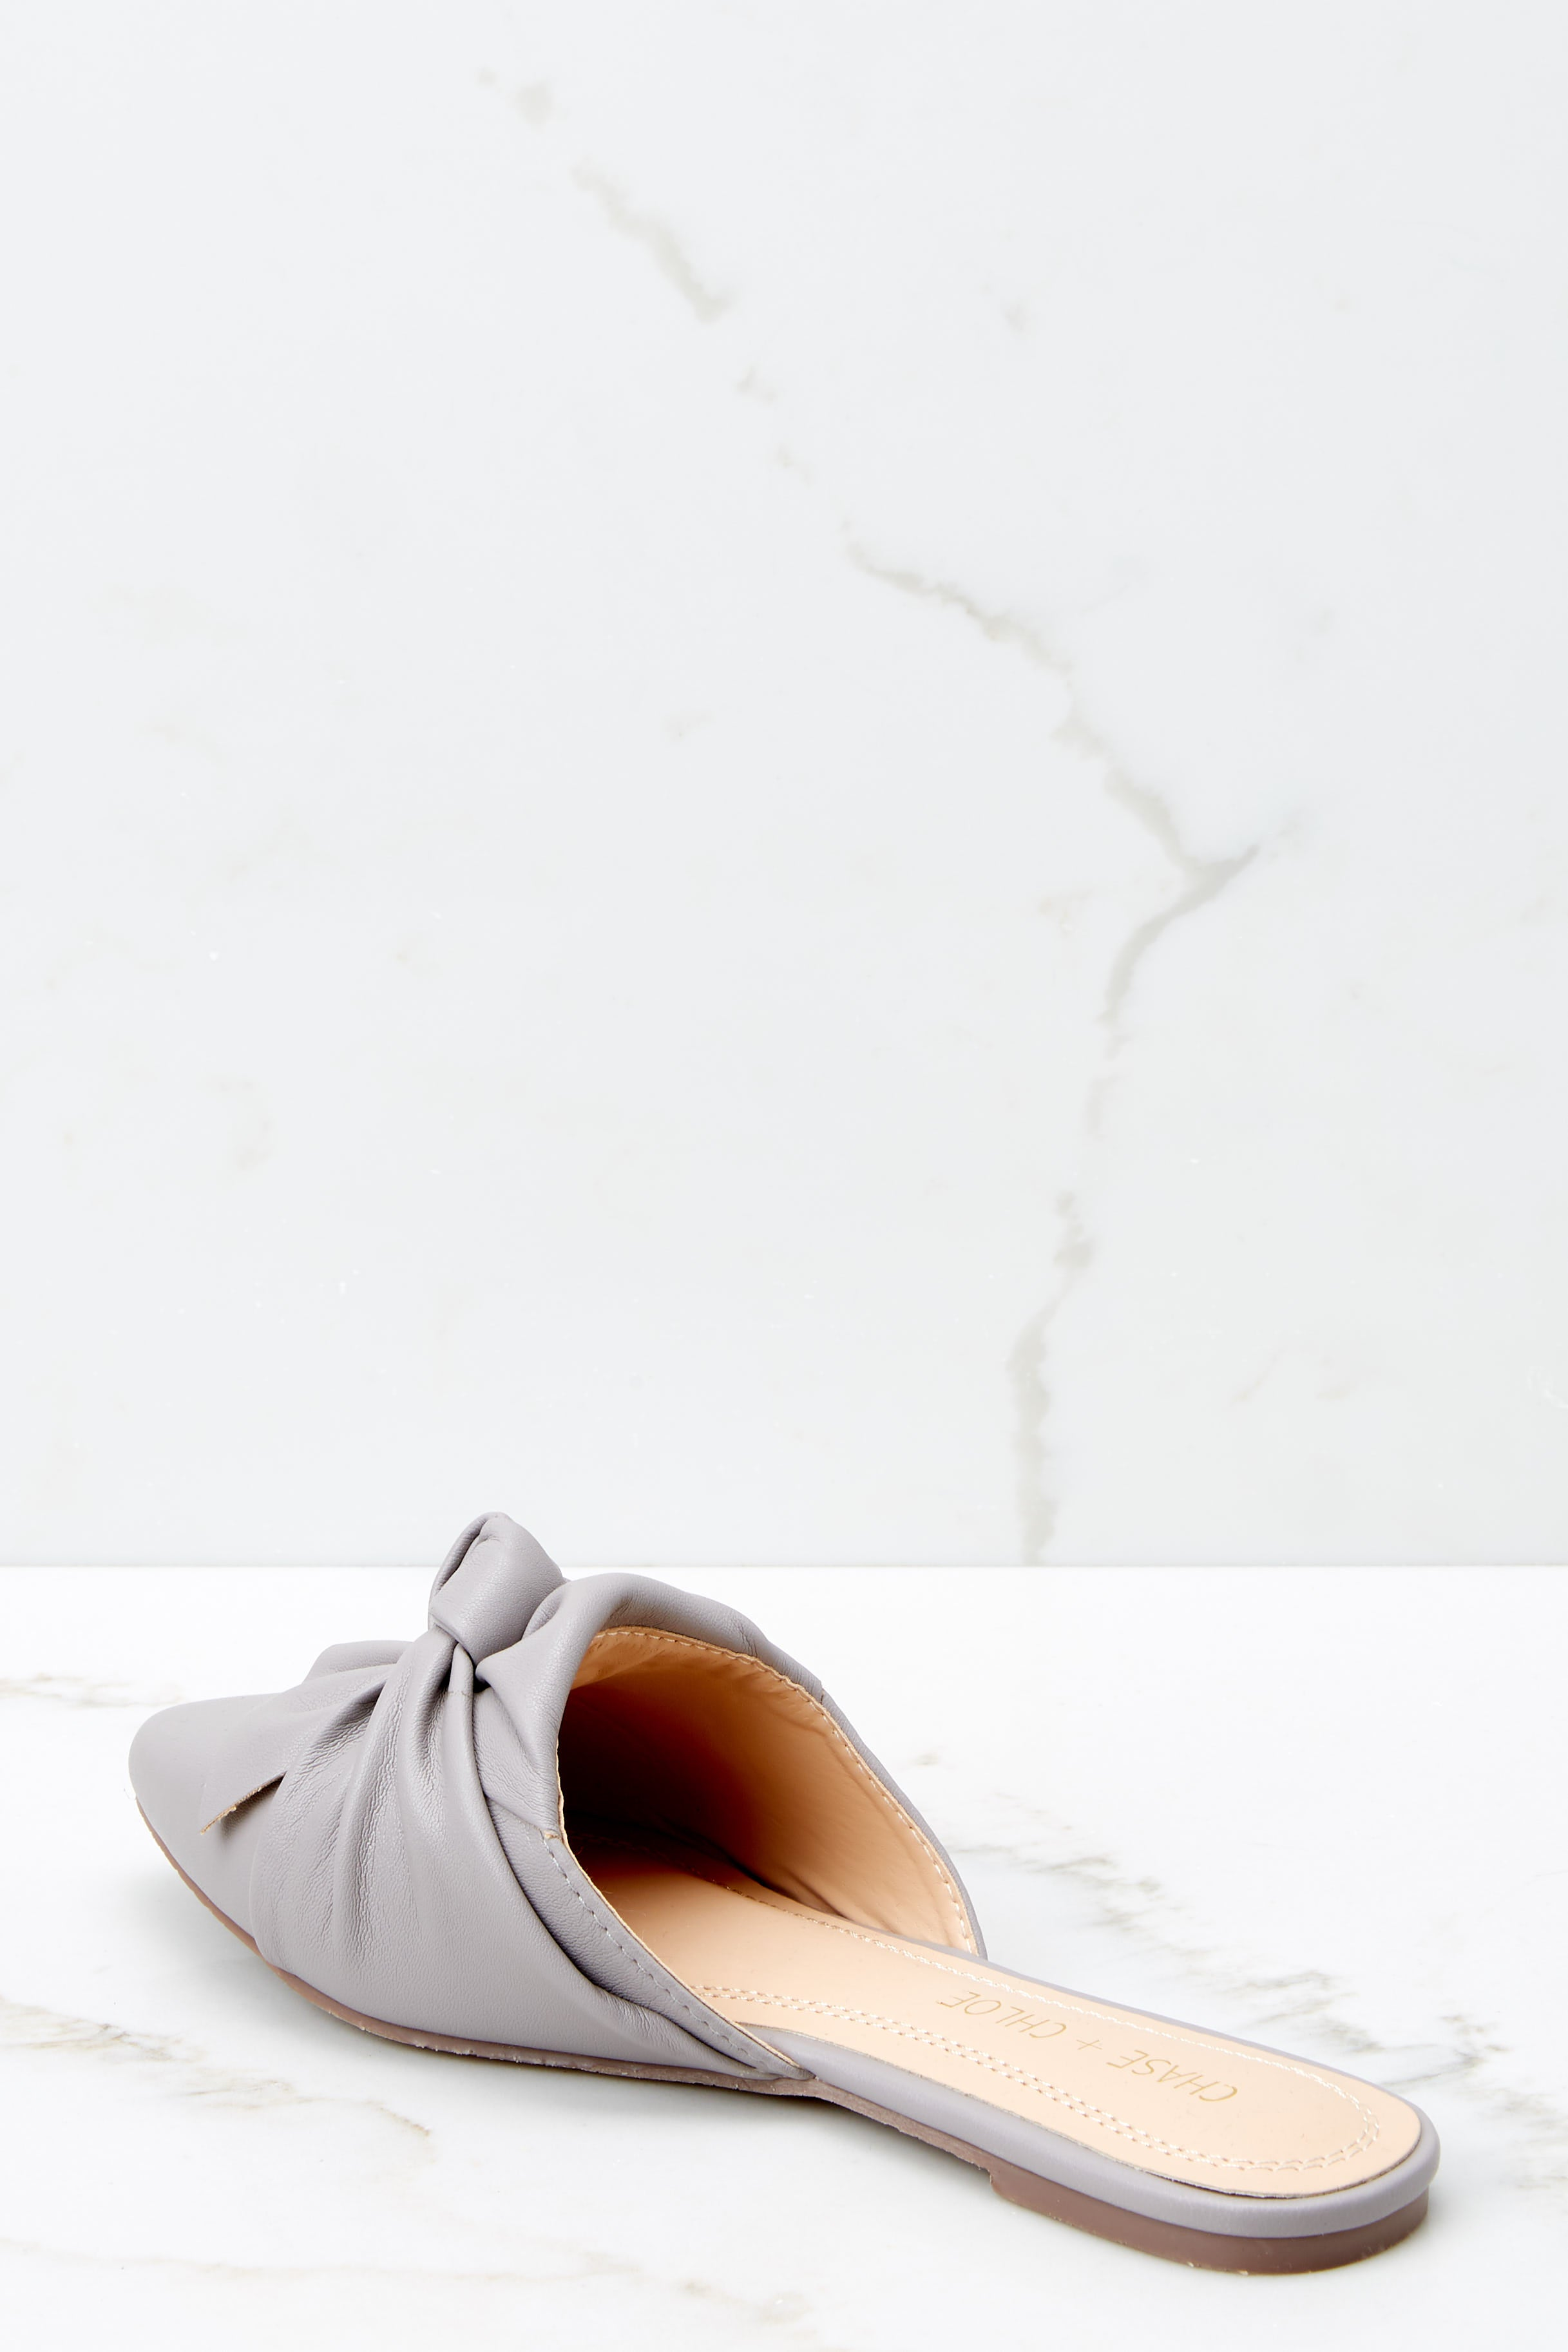 Set It Aside Heather Grey Mules